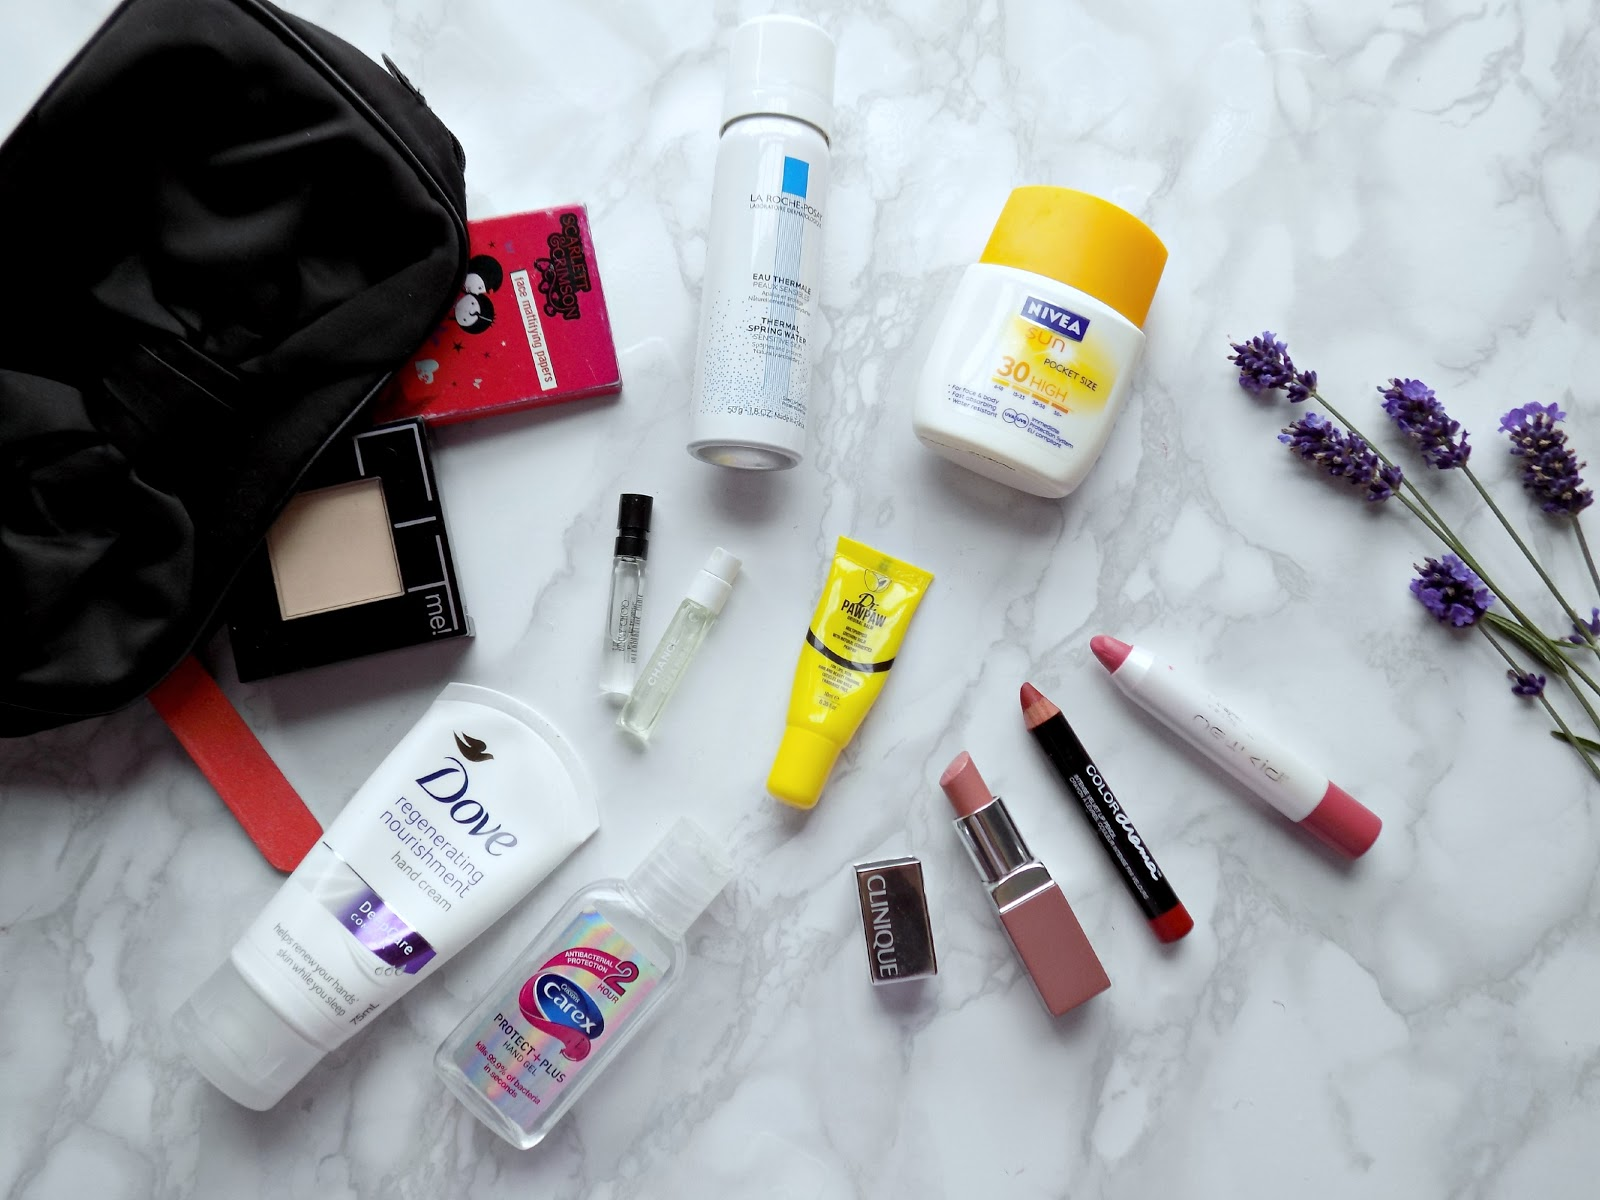 Summer handbag beauty essentials